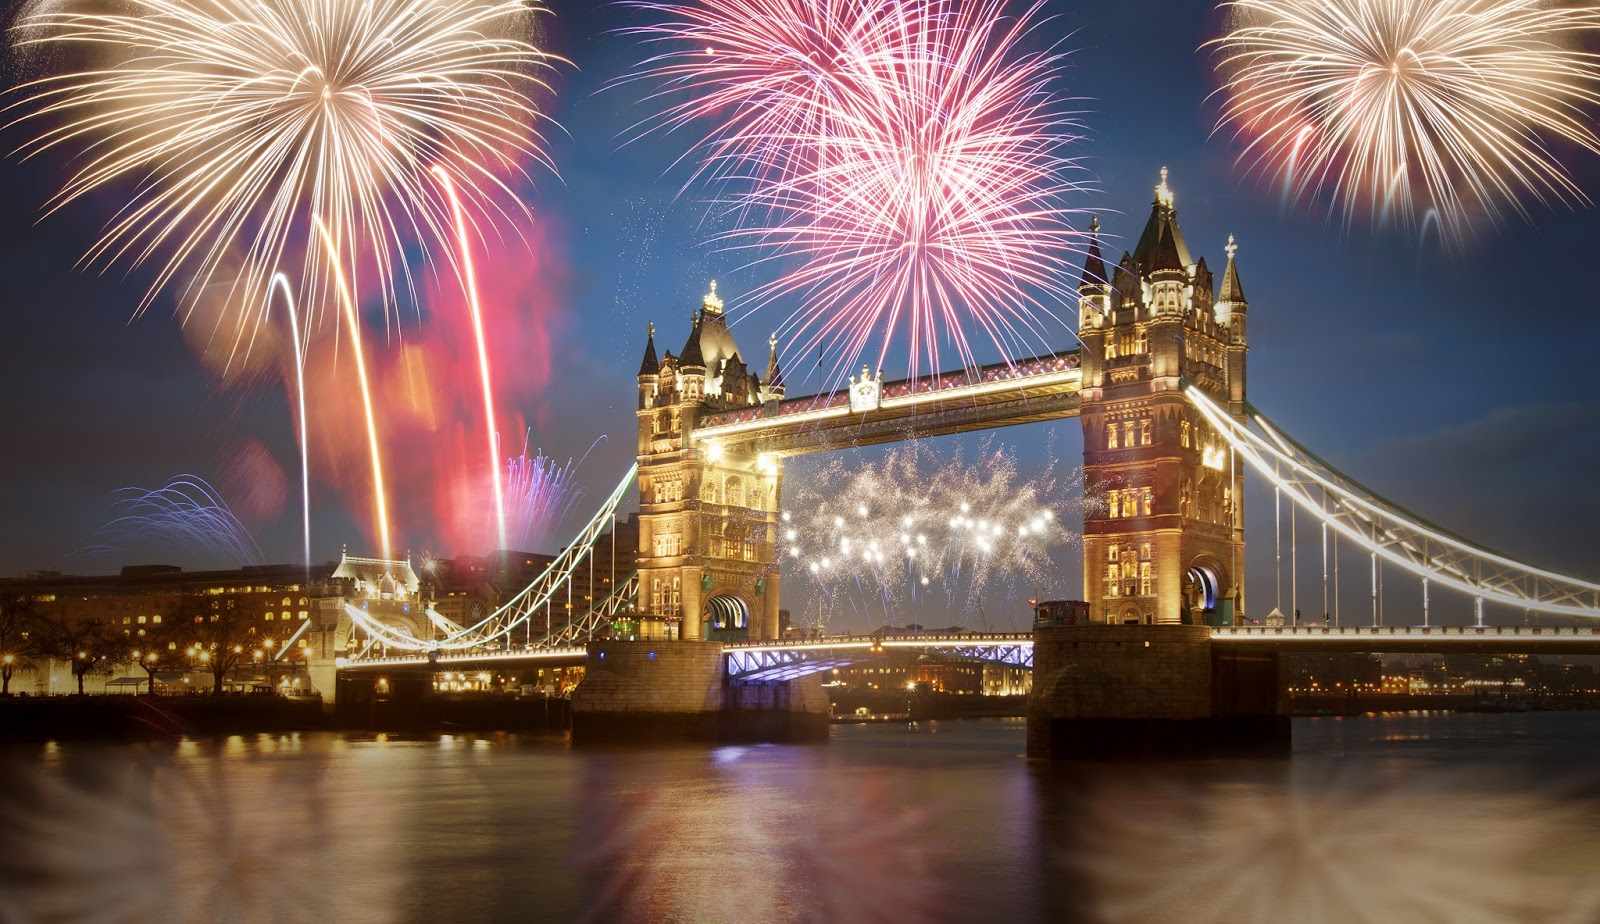 A magical and memorable New Years Eve